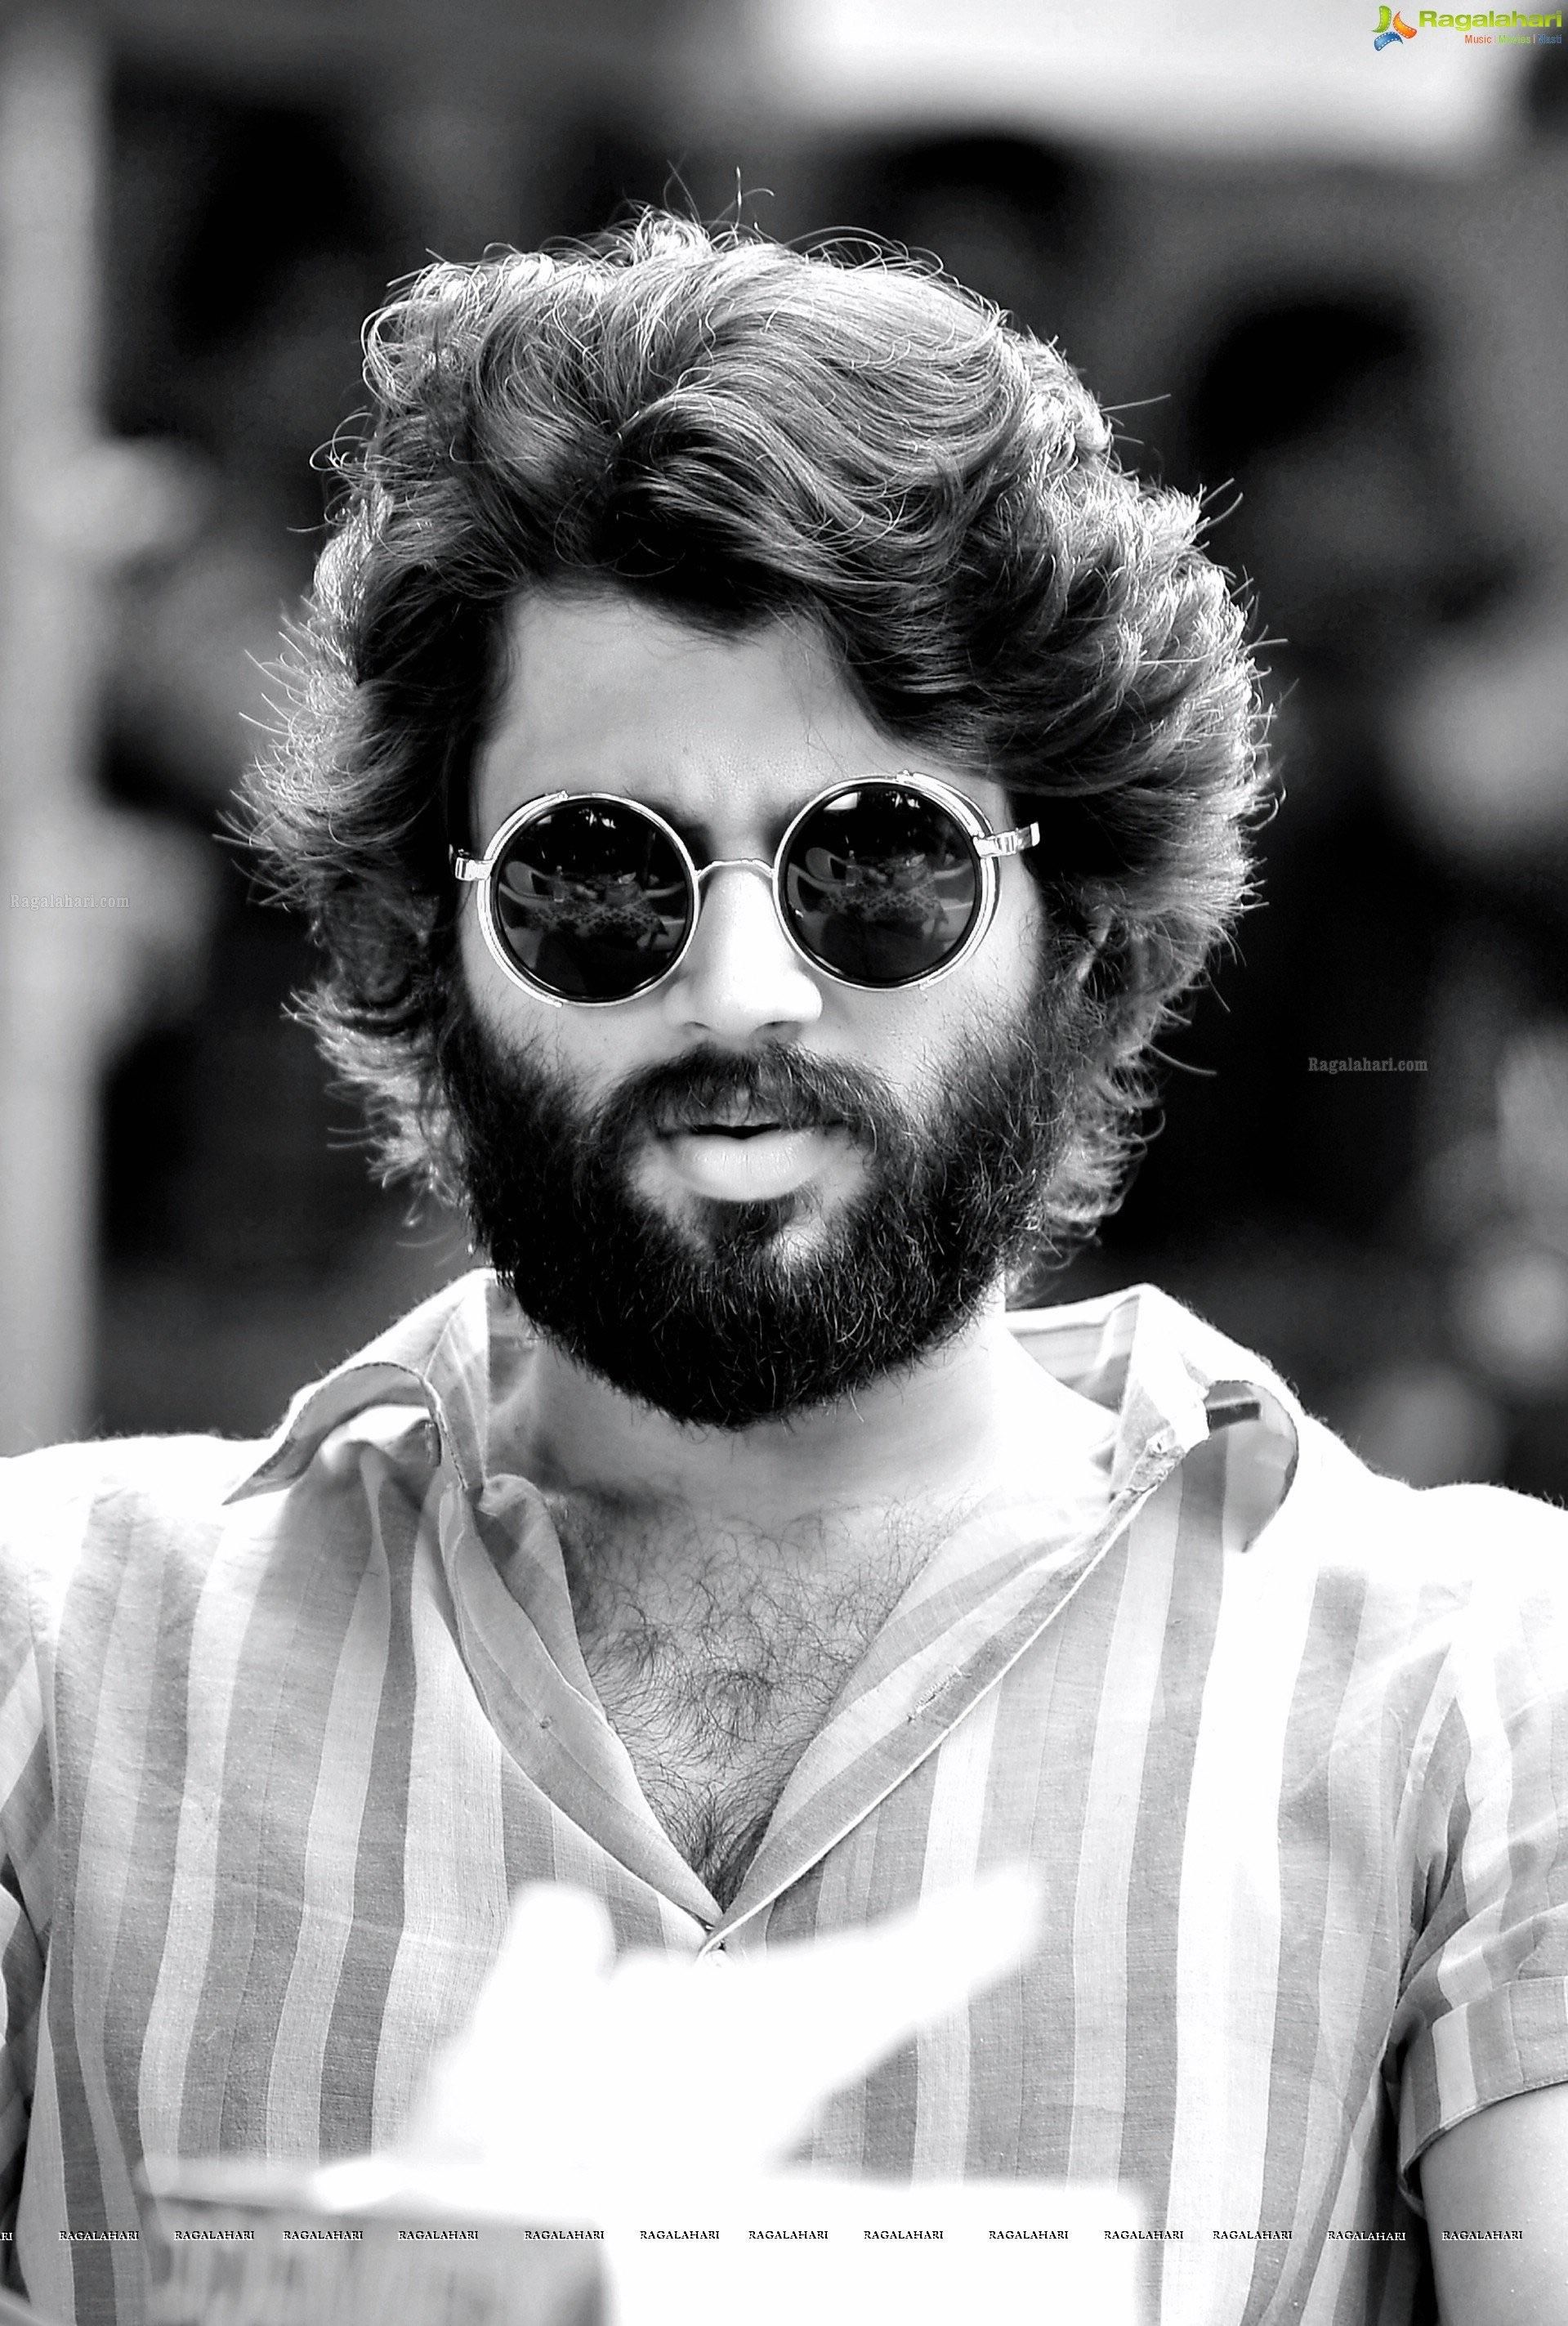 How To Style My Hair Like This What Length And Type Should My Hair Be And How Long Would It Take Me Http If Vijay Devarakonda Vijay Actor Galaxy Pictures